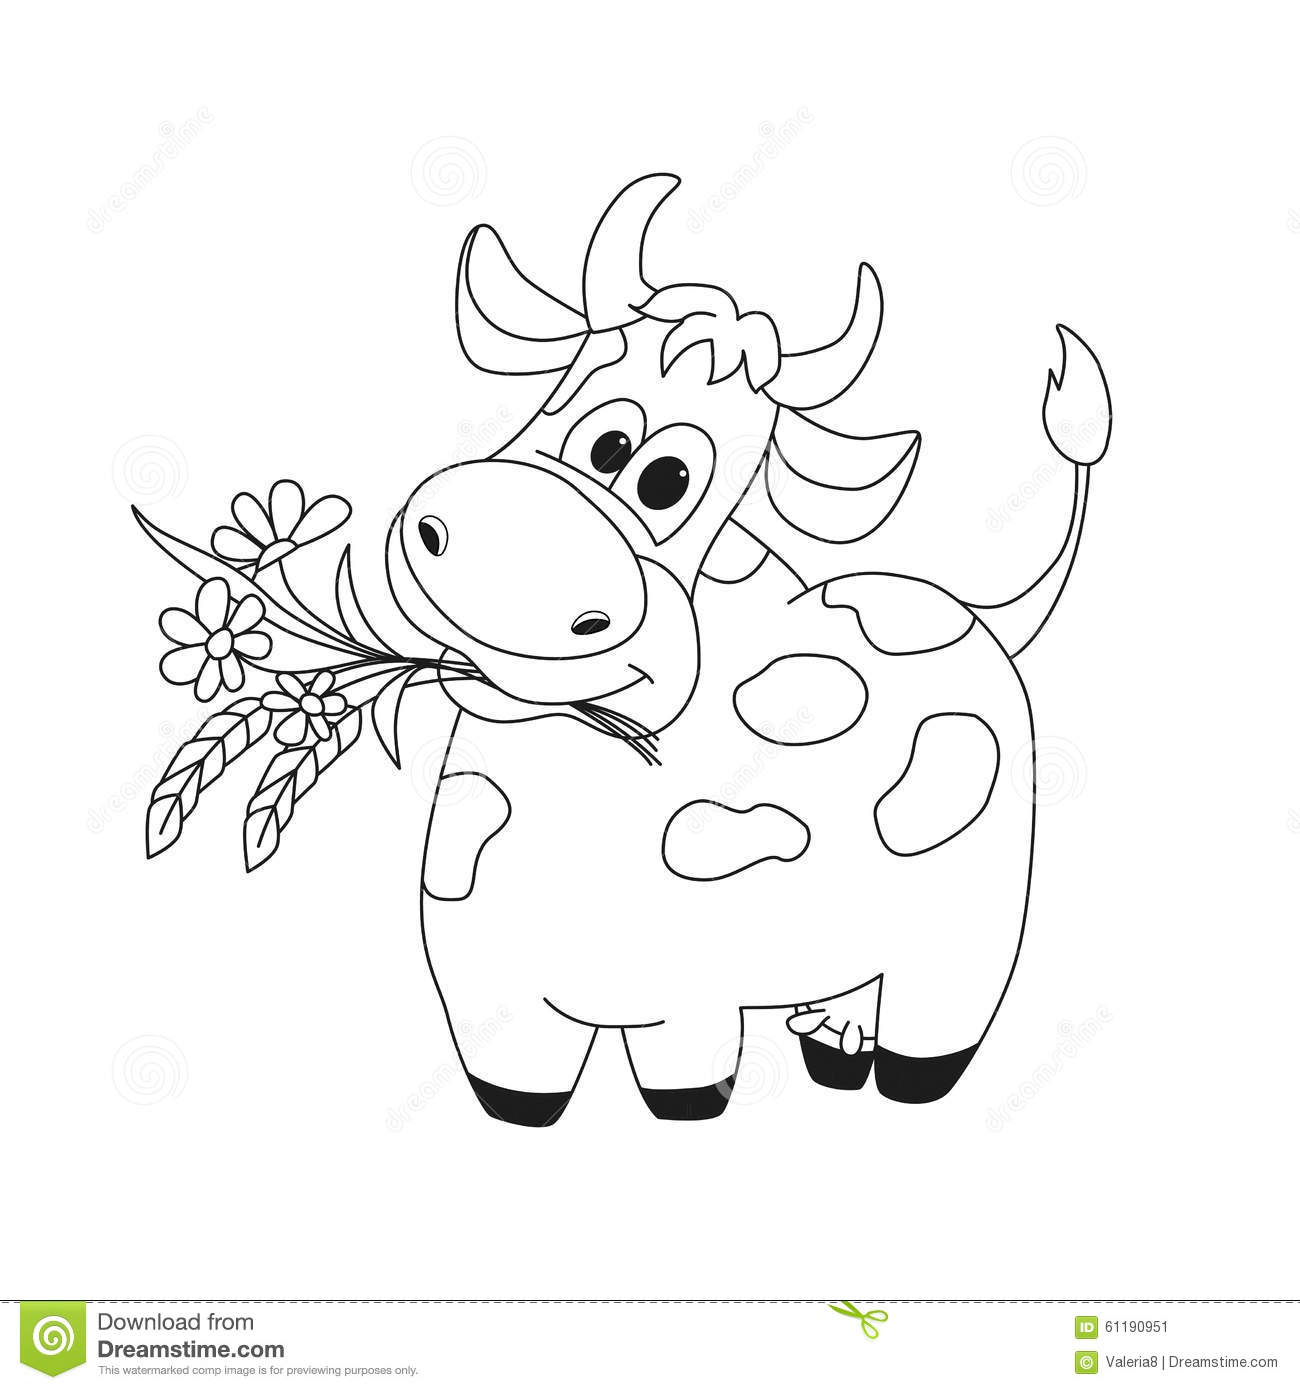 Outline Illustration Of Cute Cow With Flowers Stock